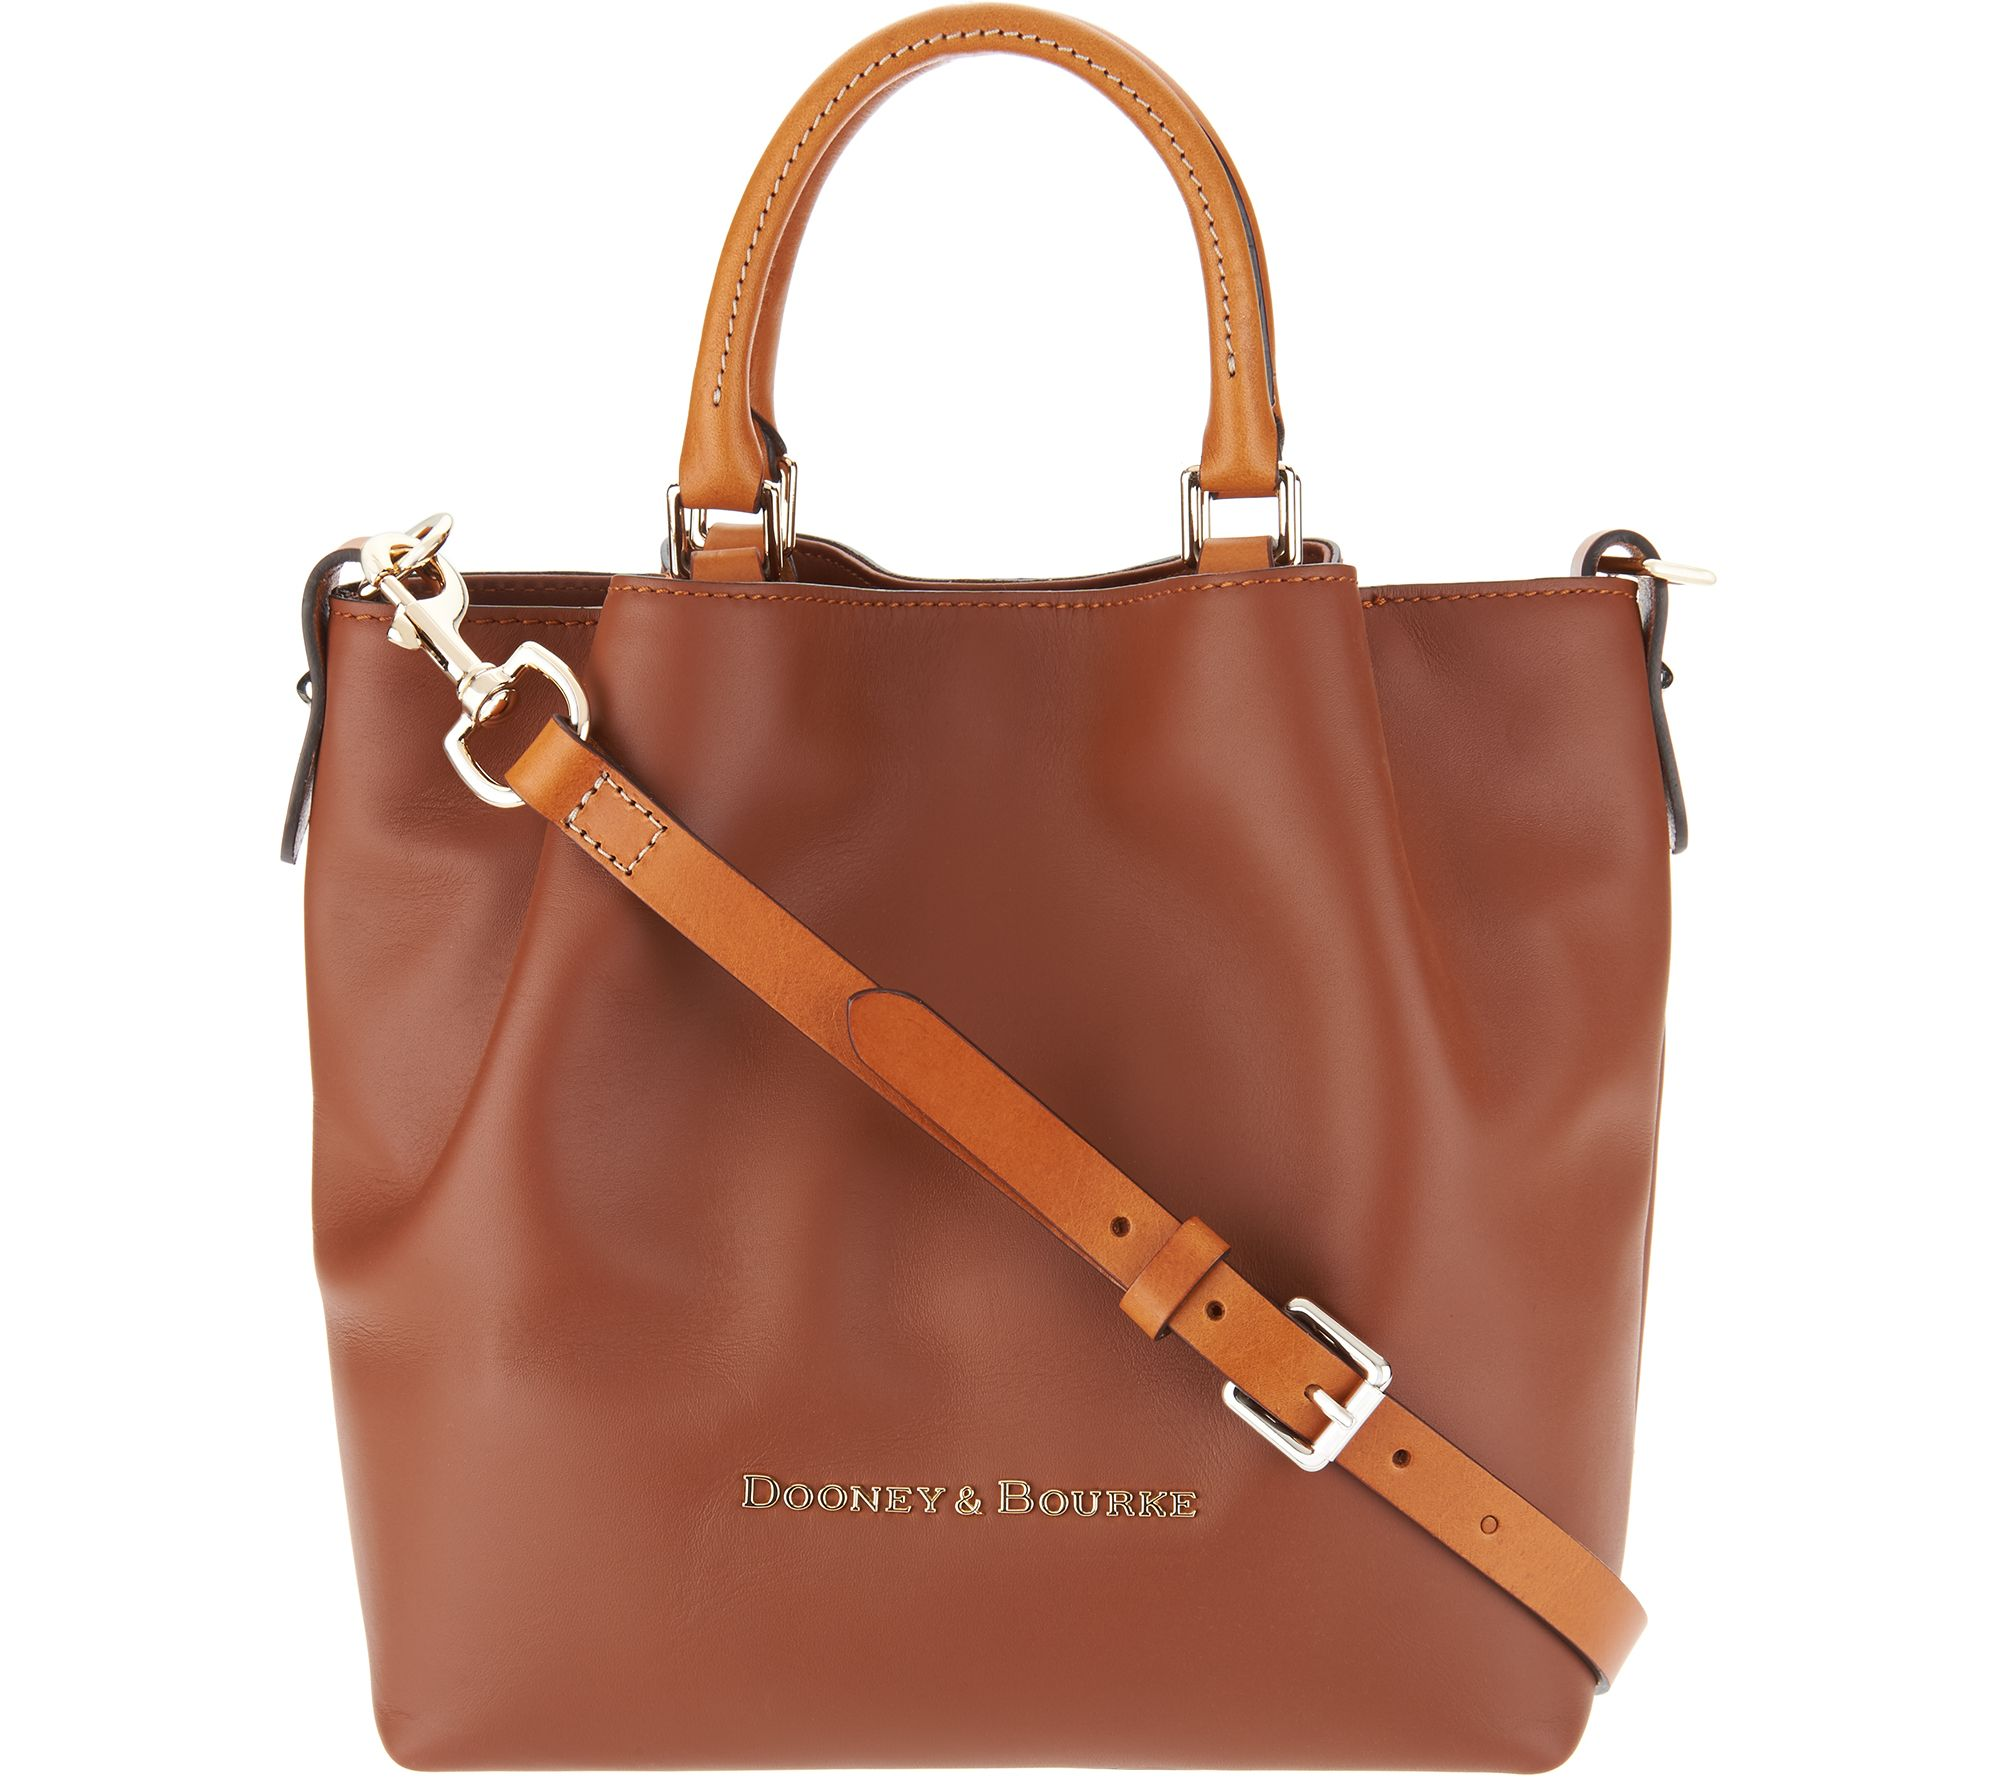 07d21641ad6 Dooney & Bourke Smooth Leather Small Barlow Satchel - Page 1 — QVC.com